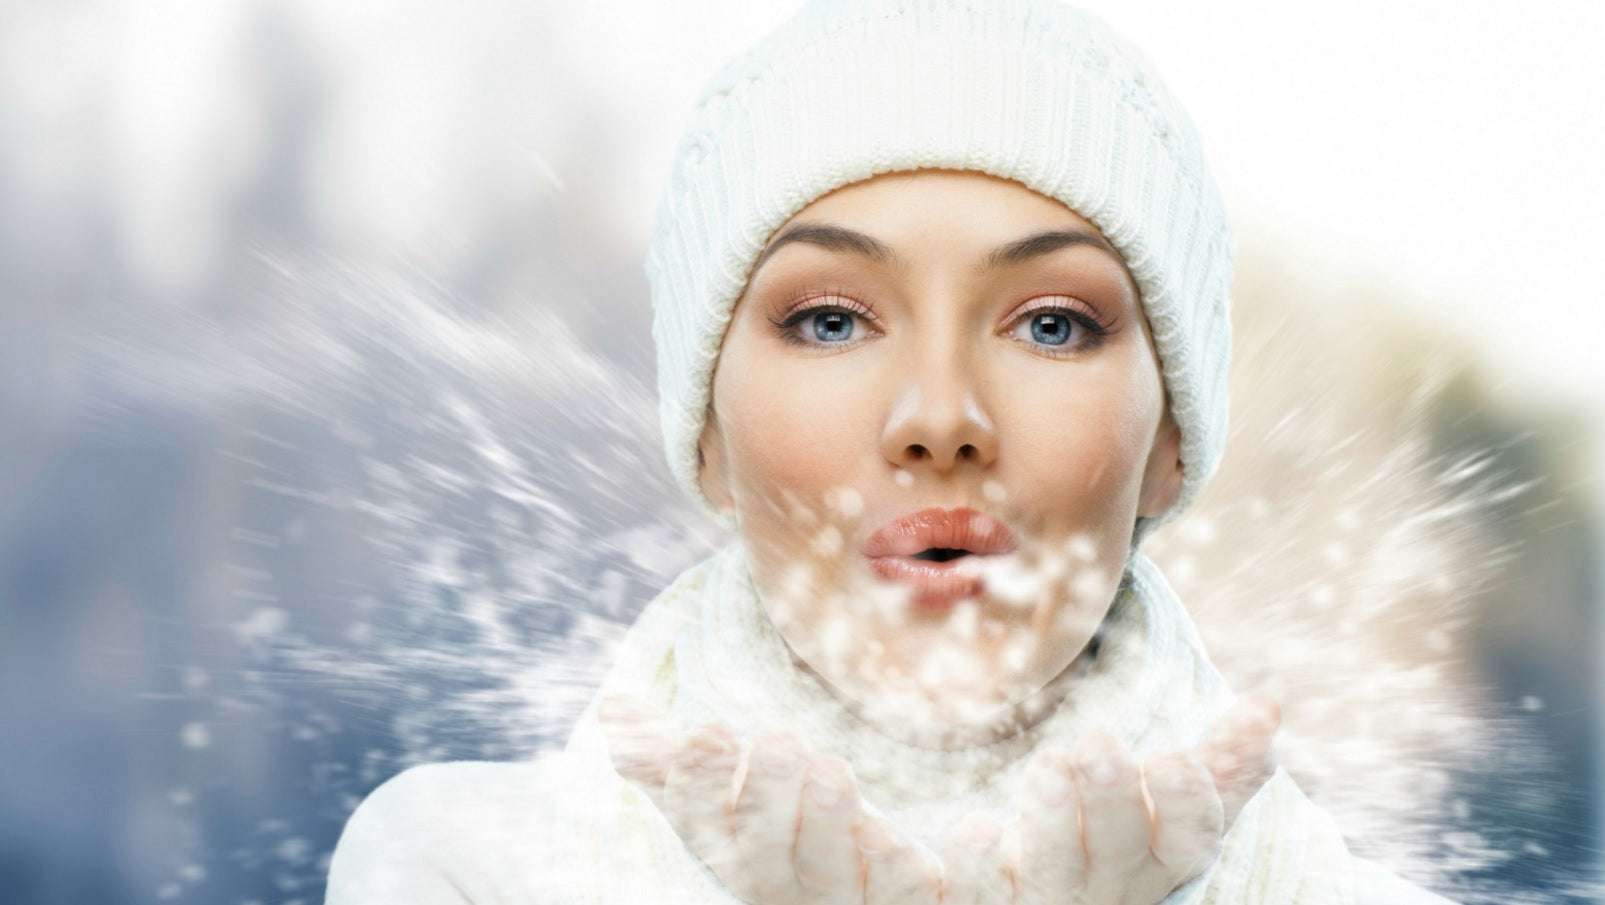 Woman blowing snowflakes from here hands